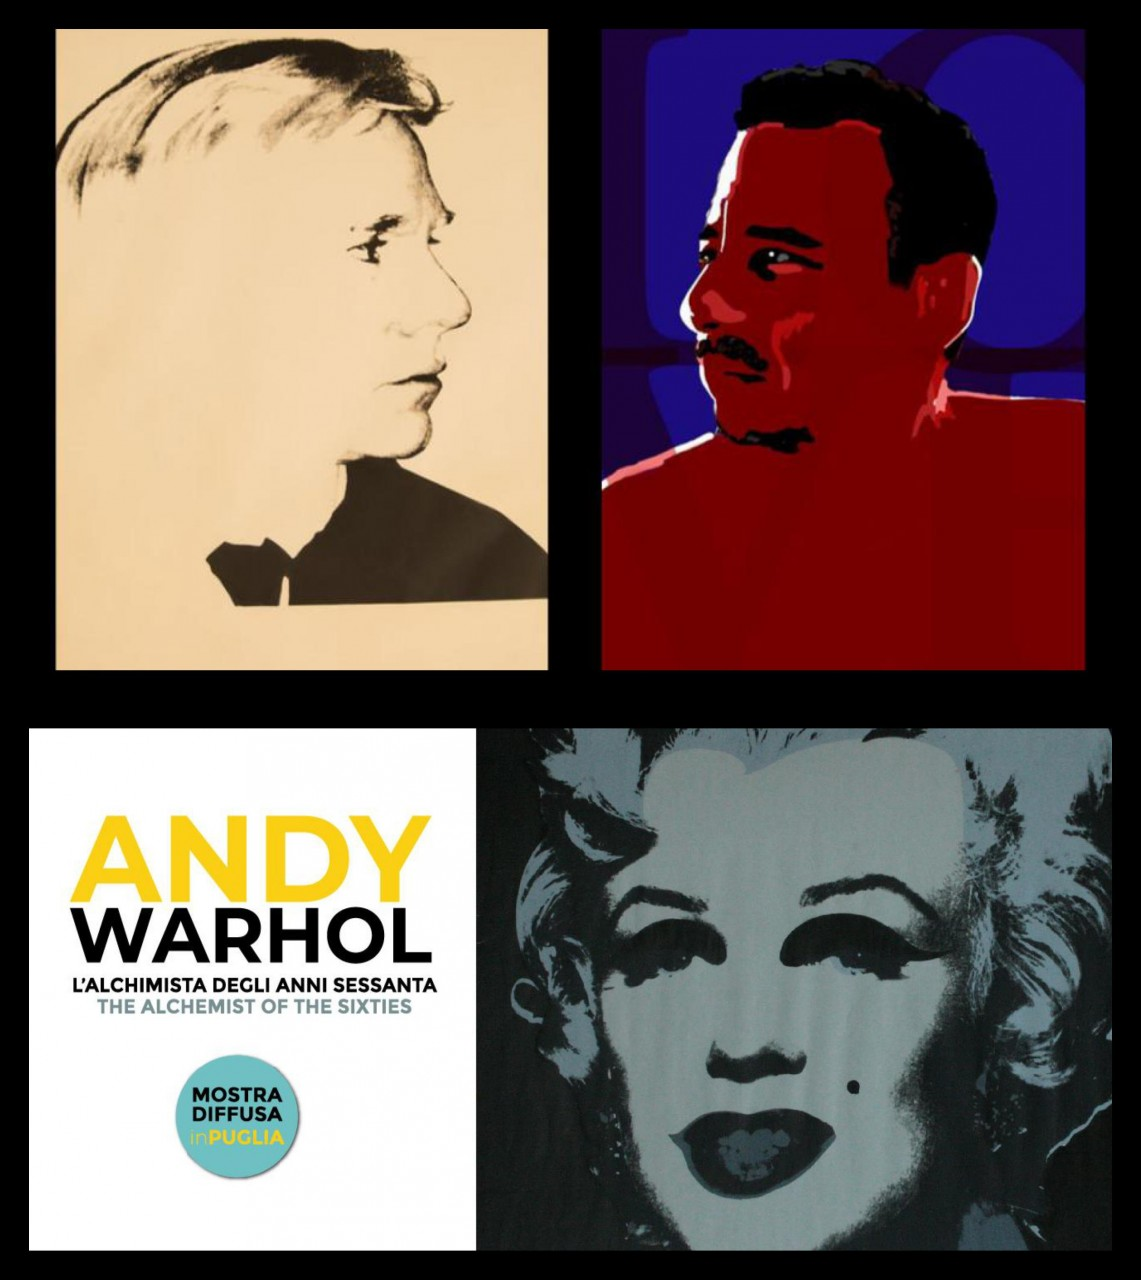 Andy Warhol the alchemist of the sixties